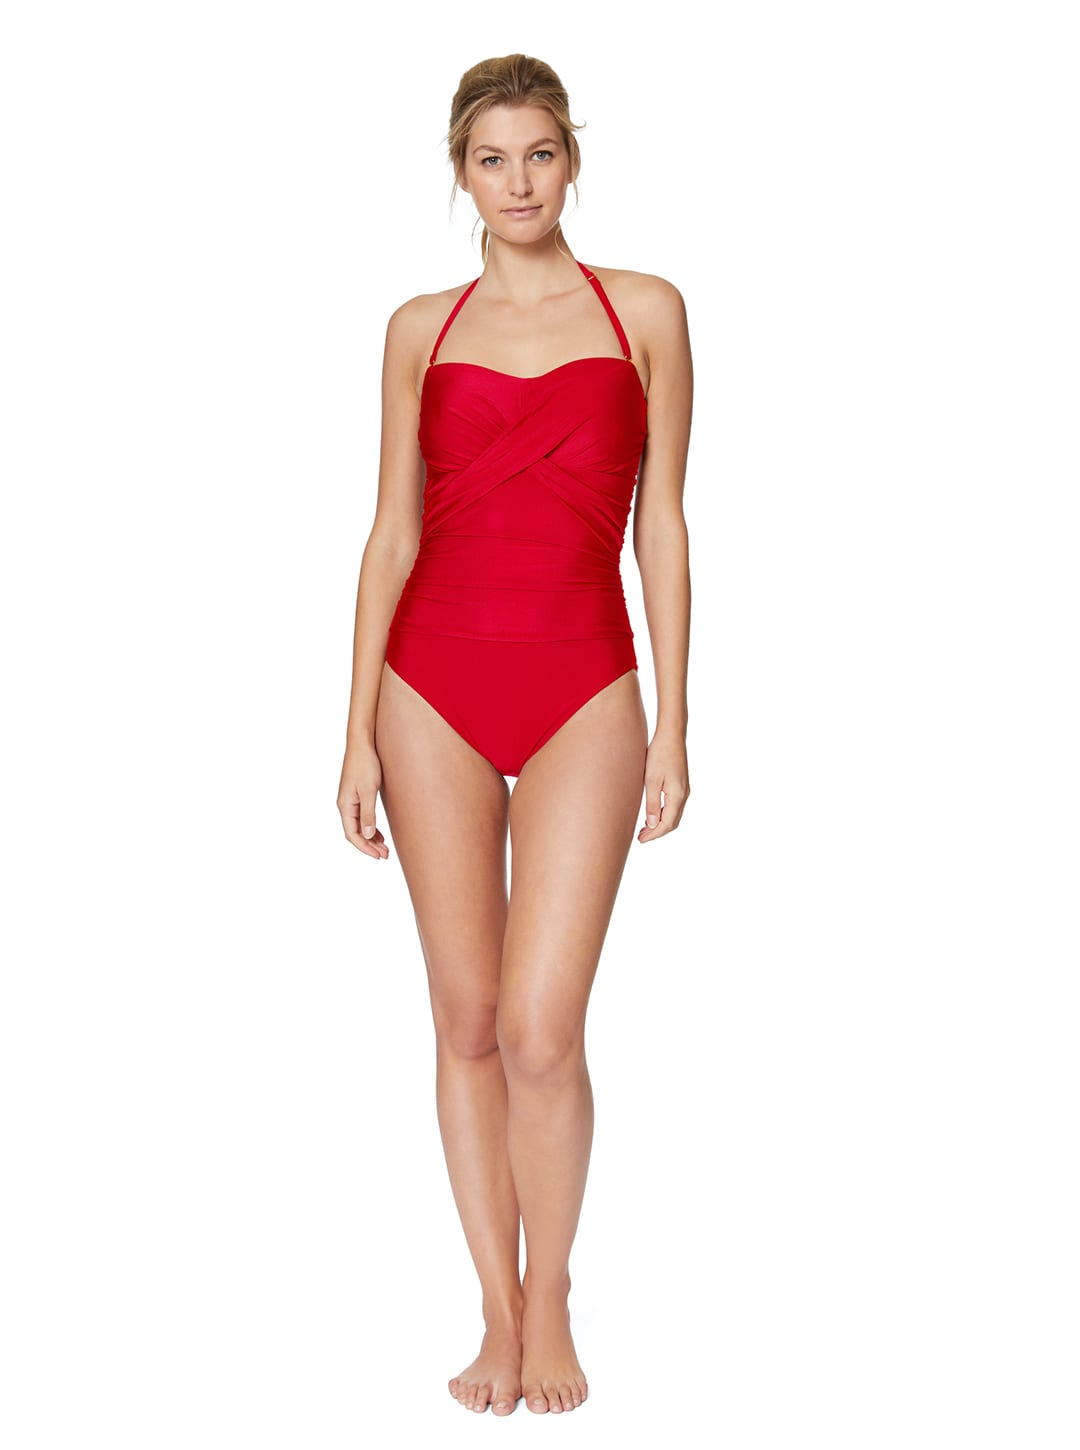 Tahari® Ultra Luxe Bandeau One Piece Swimsuit - Red - Front